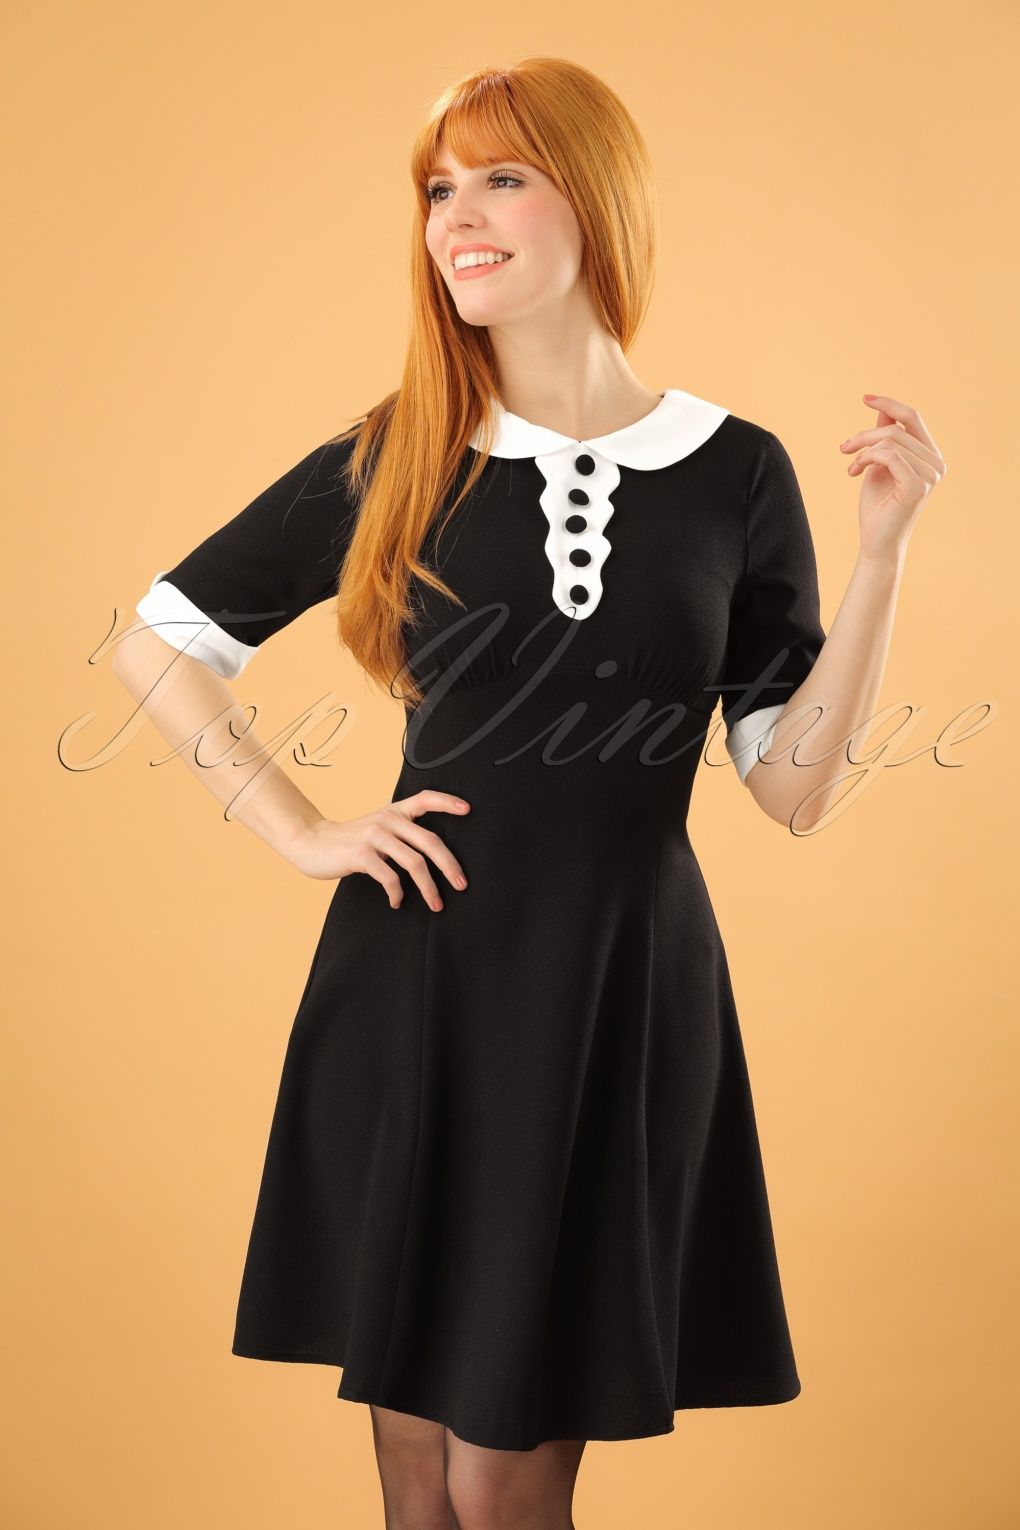 1960s Mad Men Dresses and Clothing Styles 60s Magpie Mini Dress in Black £27.78 AT vintagedancer.com